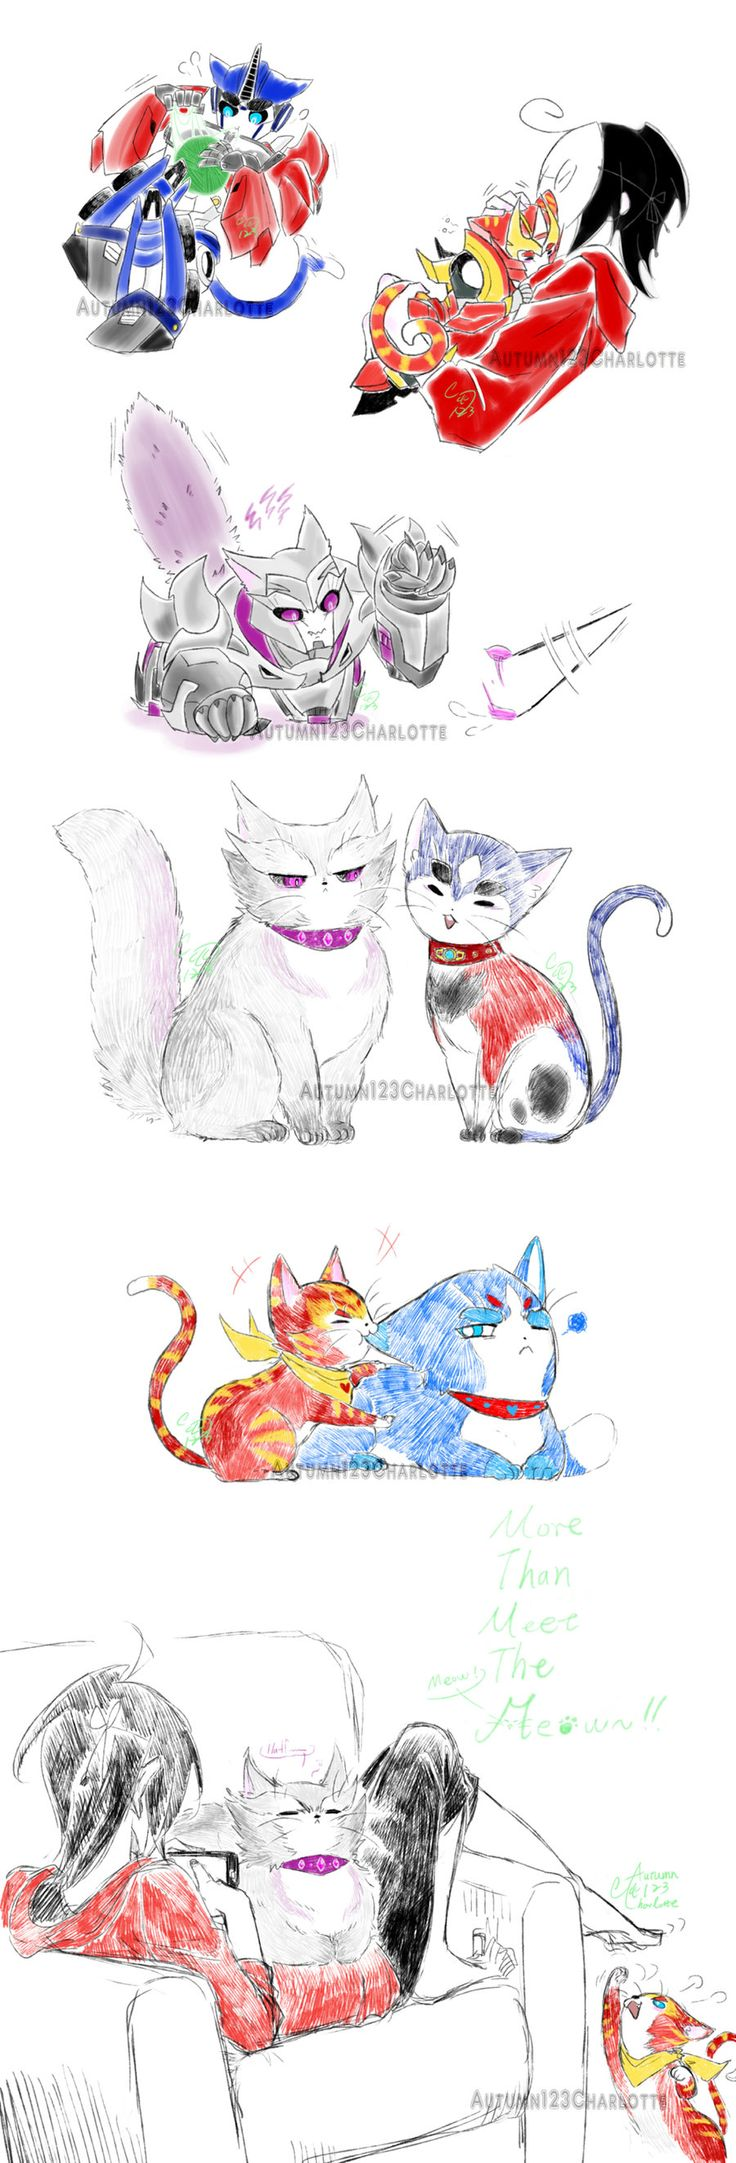 Part 1 2 Yoyoyo Three Here This Time Are Cons Cats In Want A Screamy So Is Her And Enjoy The Meow Power XDDD